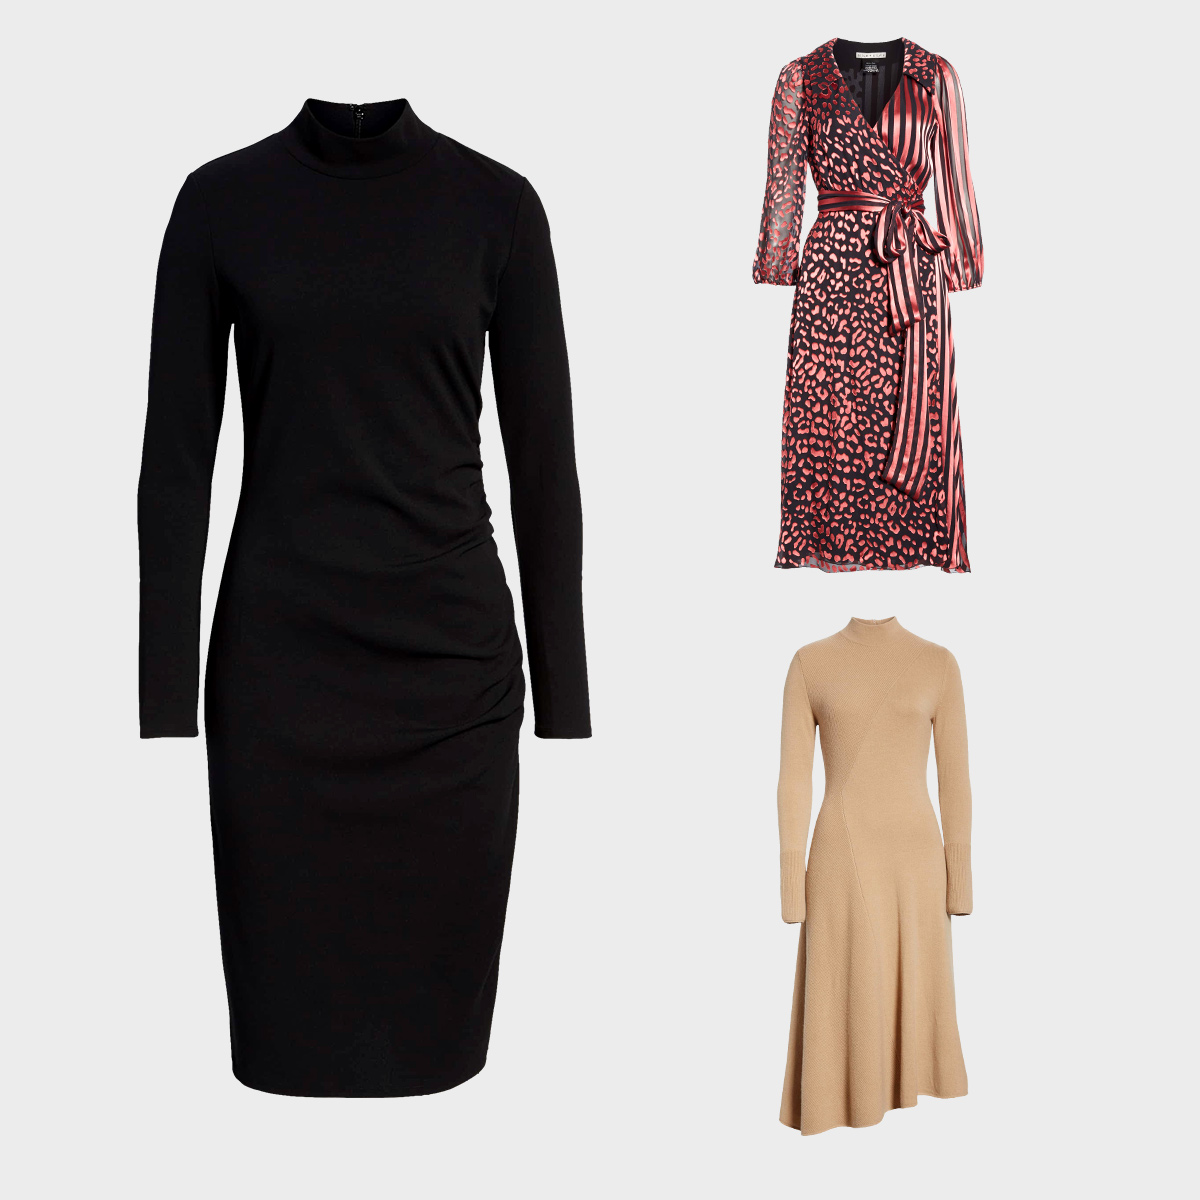 Three dresses perfect for wearing either at night or during the day in the fall.